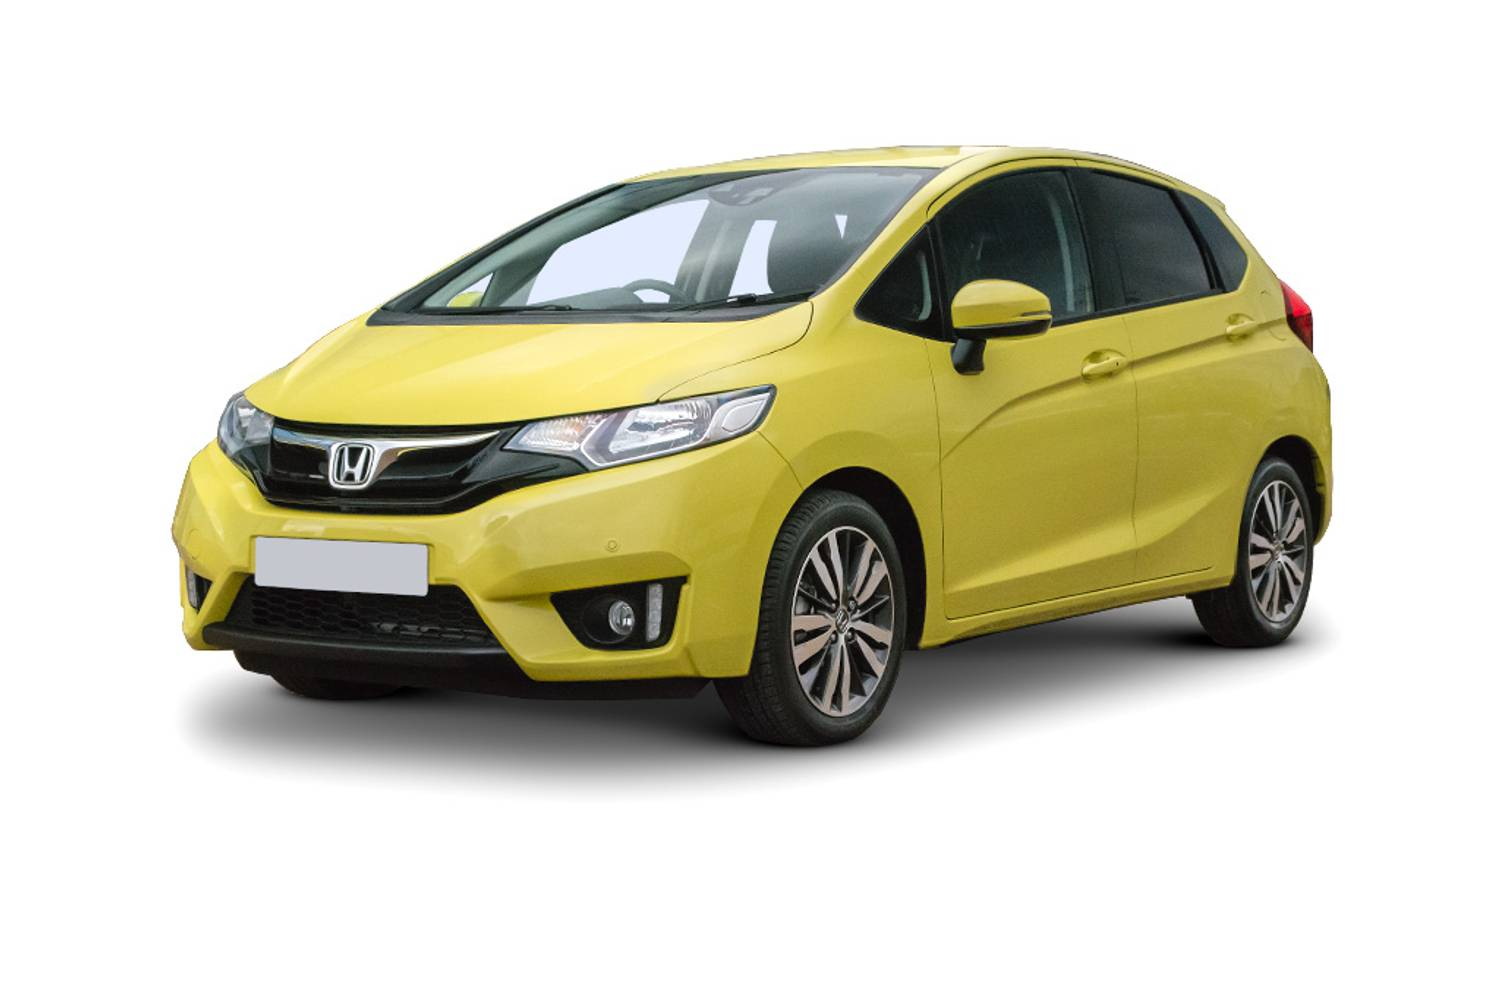 new honda jazz hatchback 1 3 ex navi 5 door cvt 2015 for sale. Black Bedroom Furniture Sets. Home Design Ideas